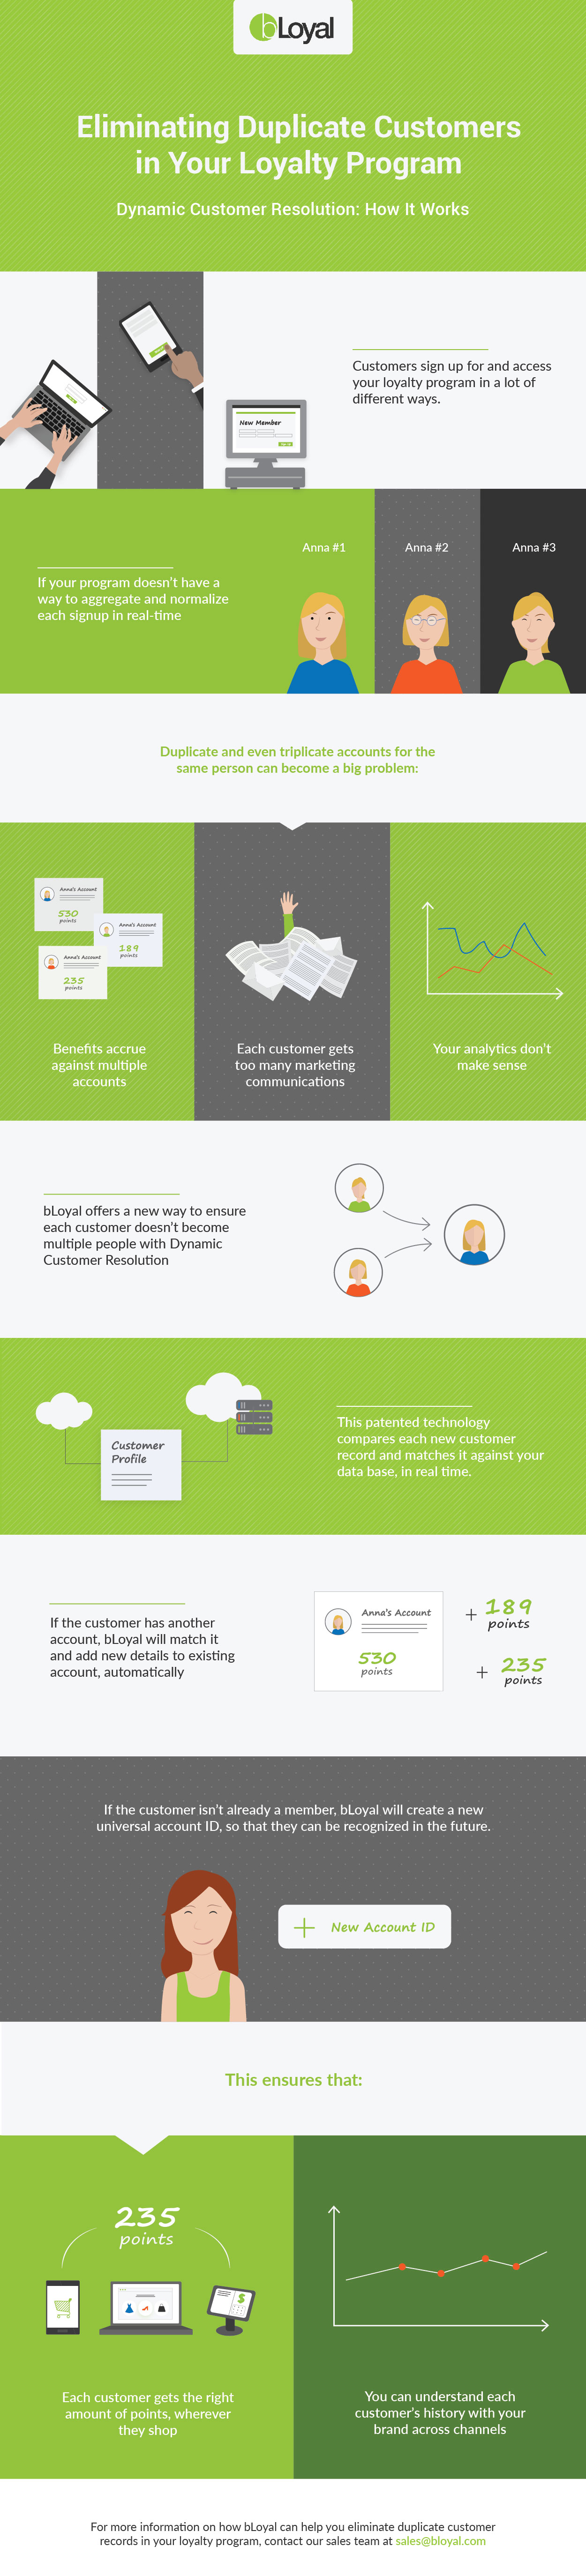 Eliminating Customer Duplicates in Your Loyalty Program - Infographic